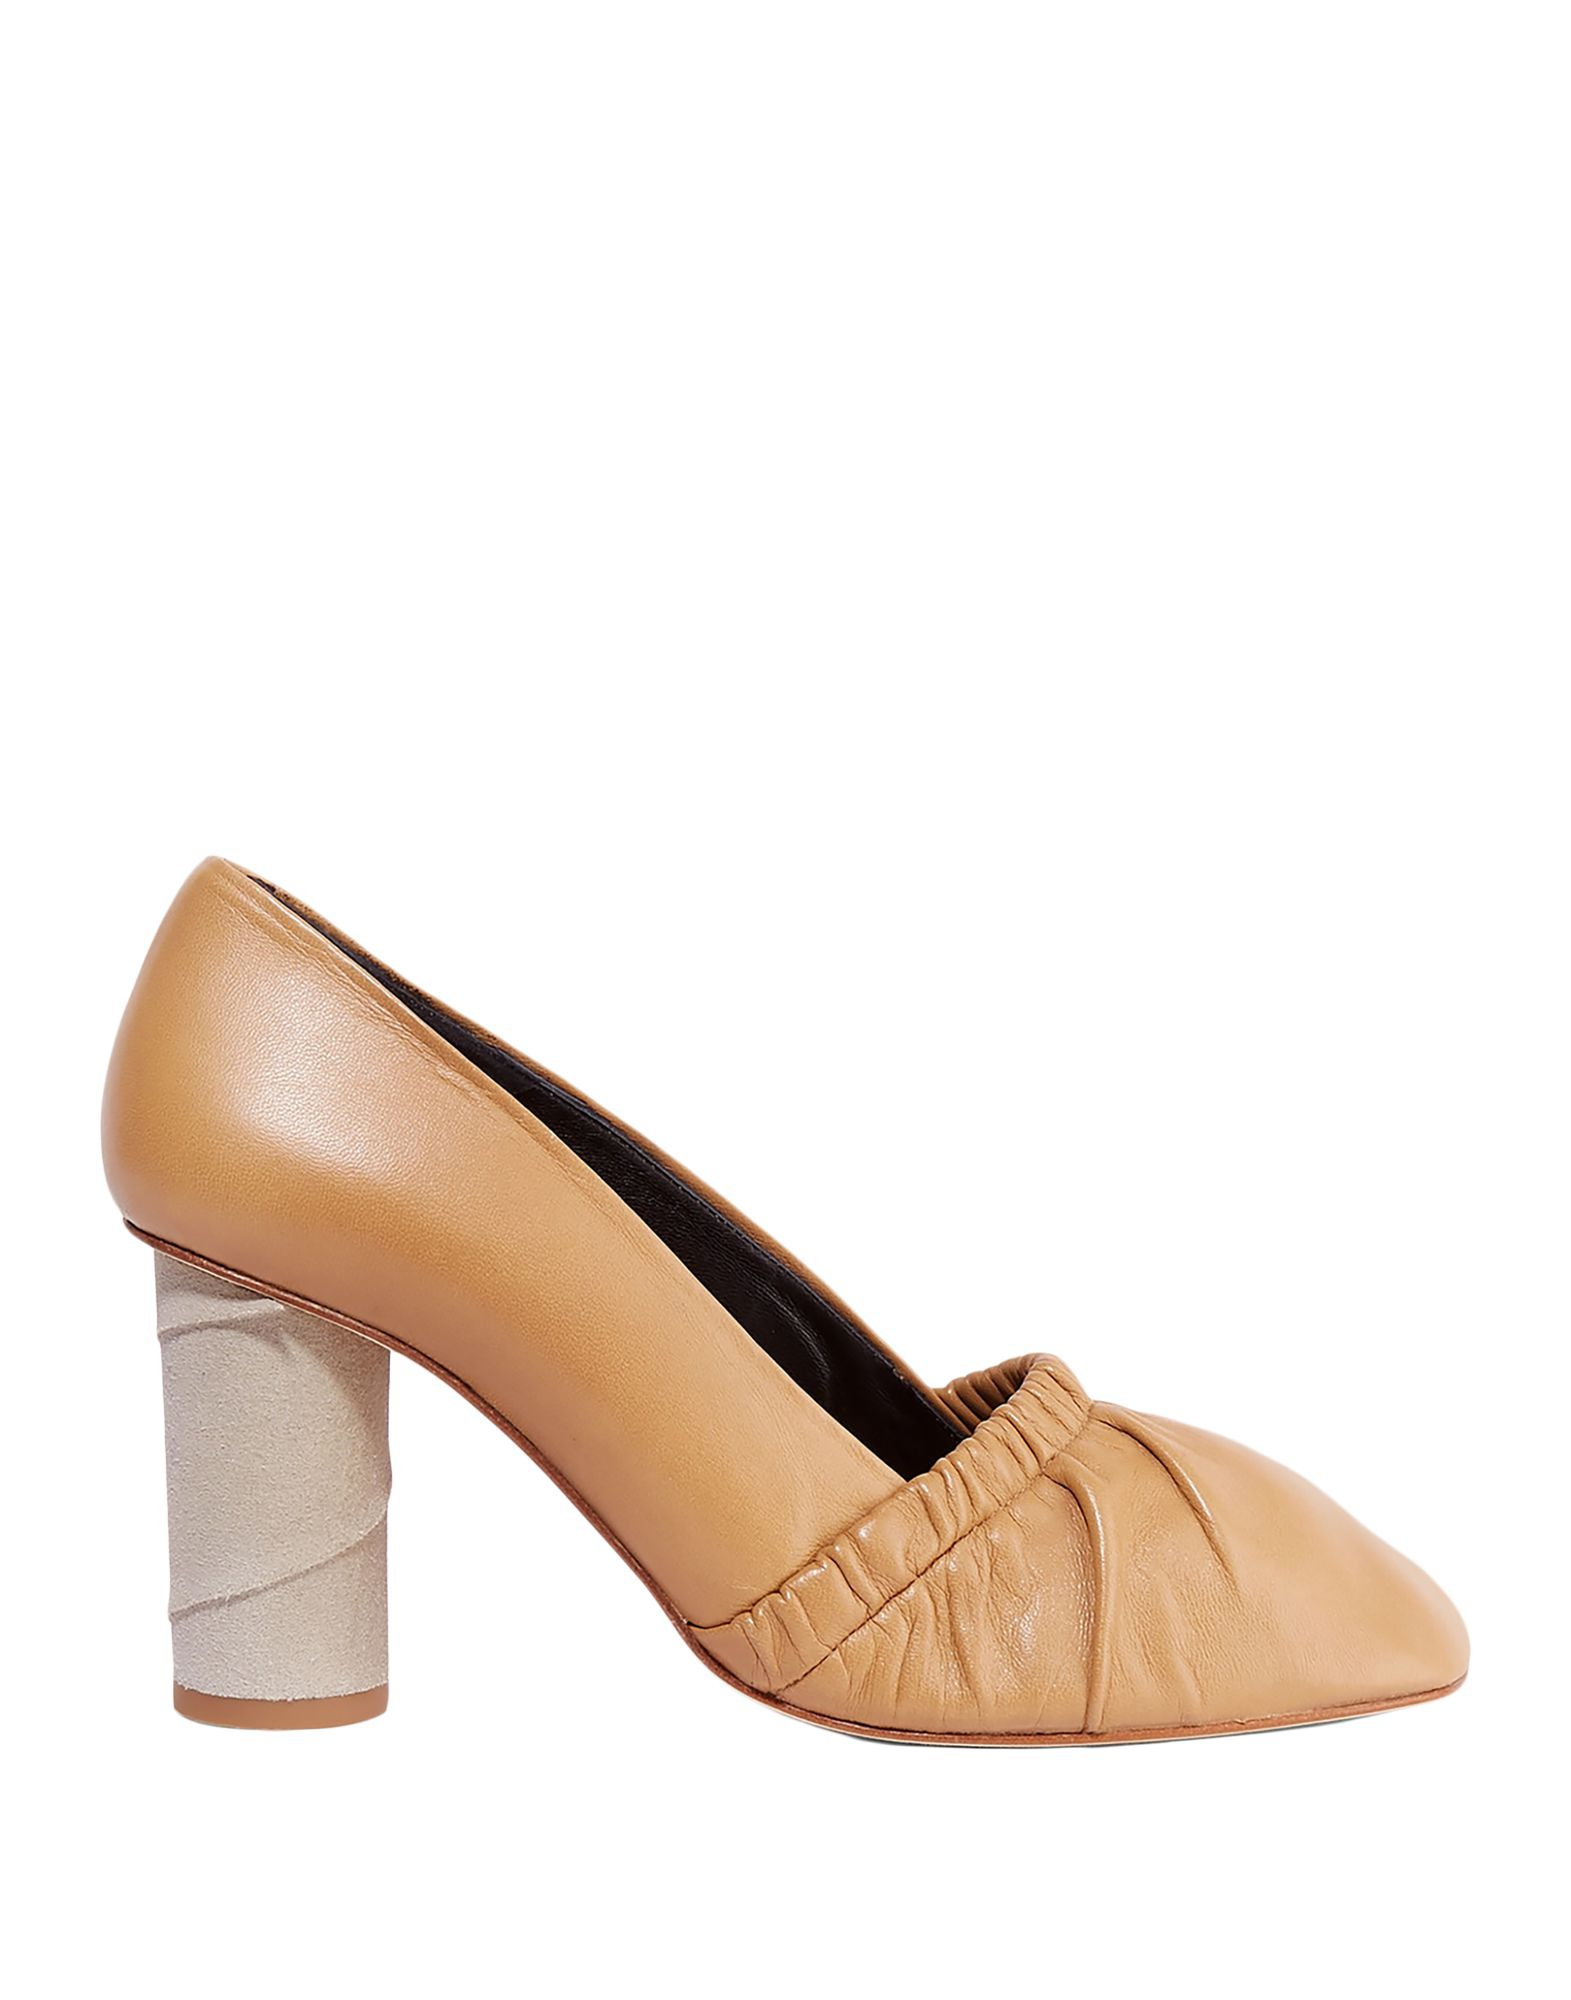 LOEWE Pumps. suede effect, no appliqués, solid color, square toeline, geometric heel, leather lining, leather sole, contains non-textile parts of animal origin. Soft Leather